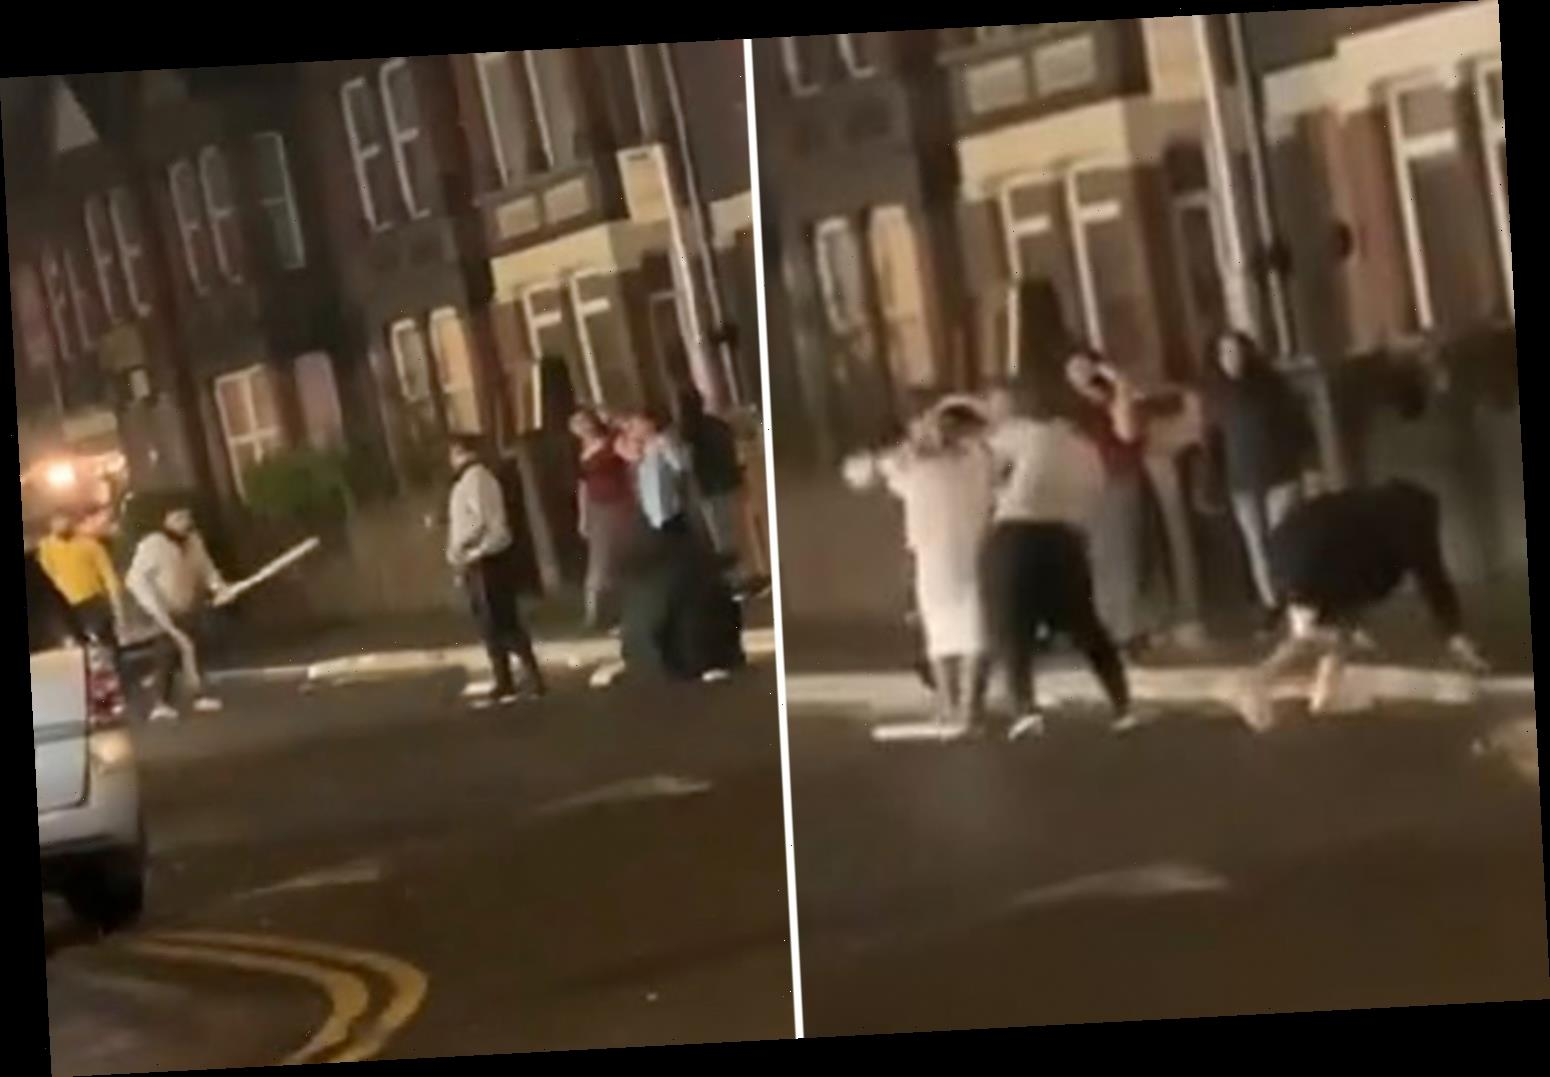 Moment street fighters batter each other with cricket bats and crates in wild west-style brawl